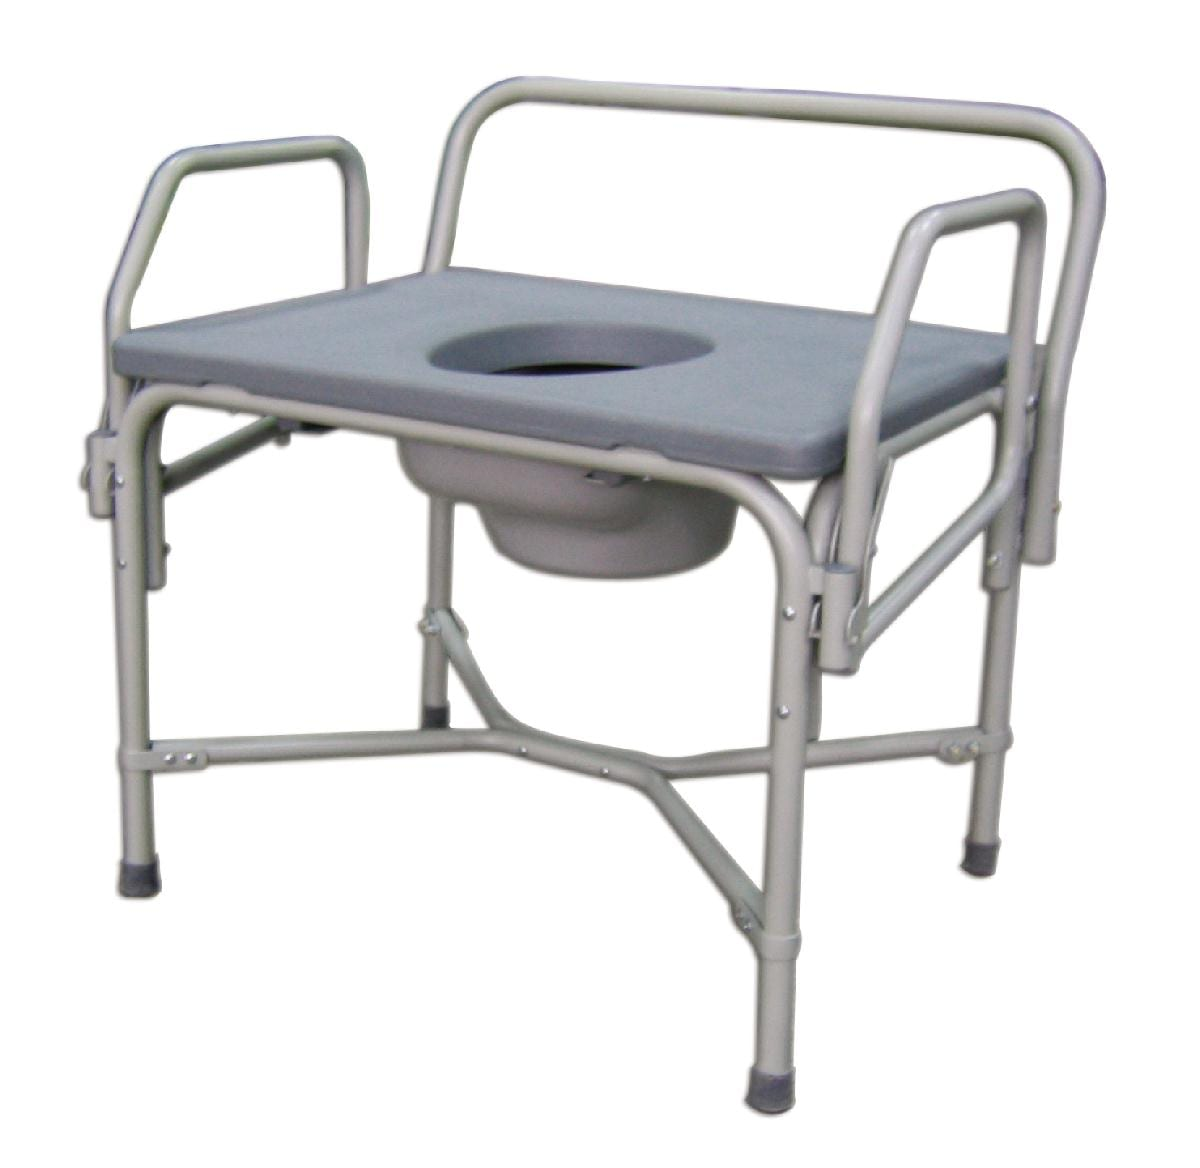 Bedside commode for obese people